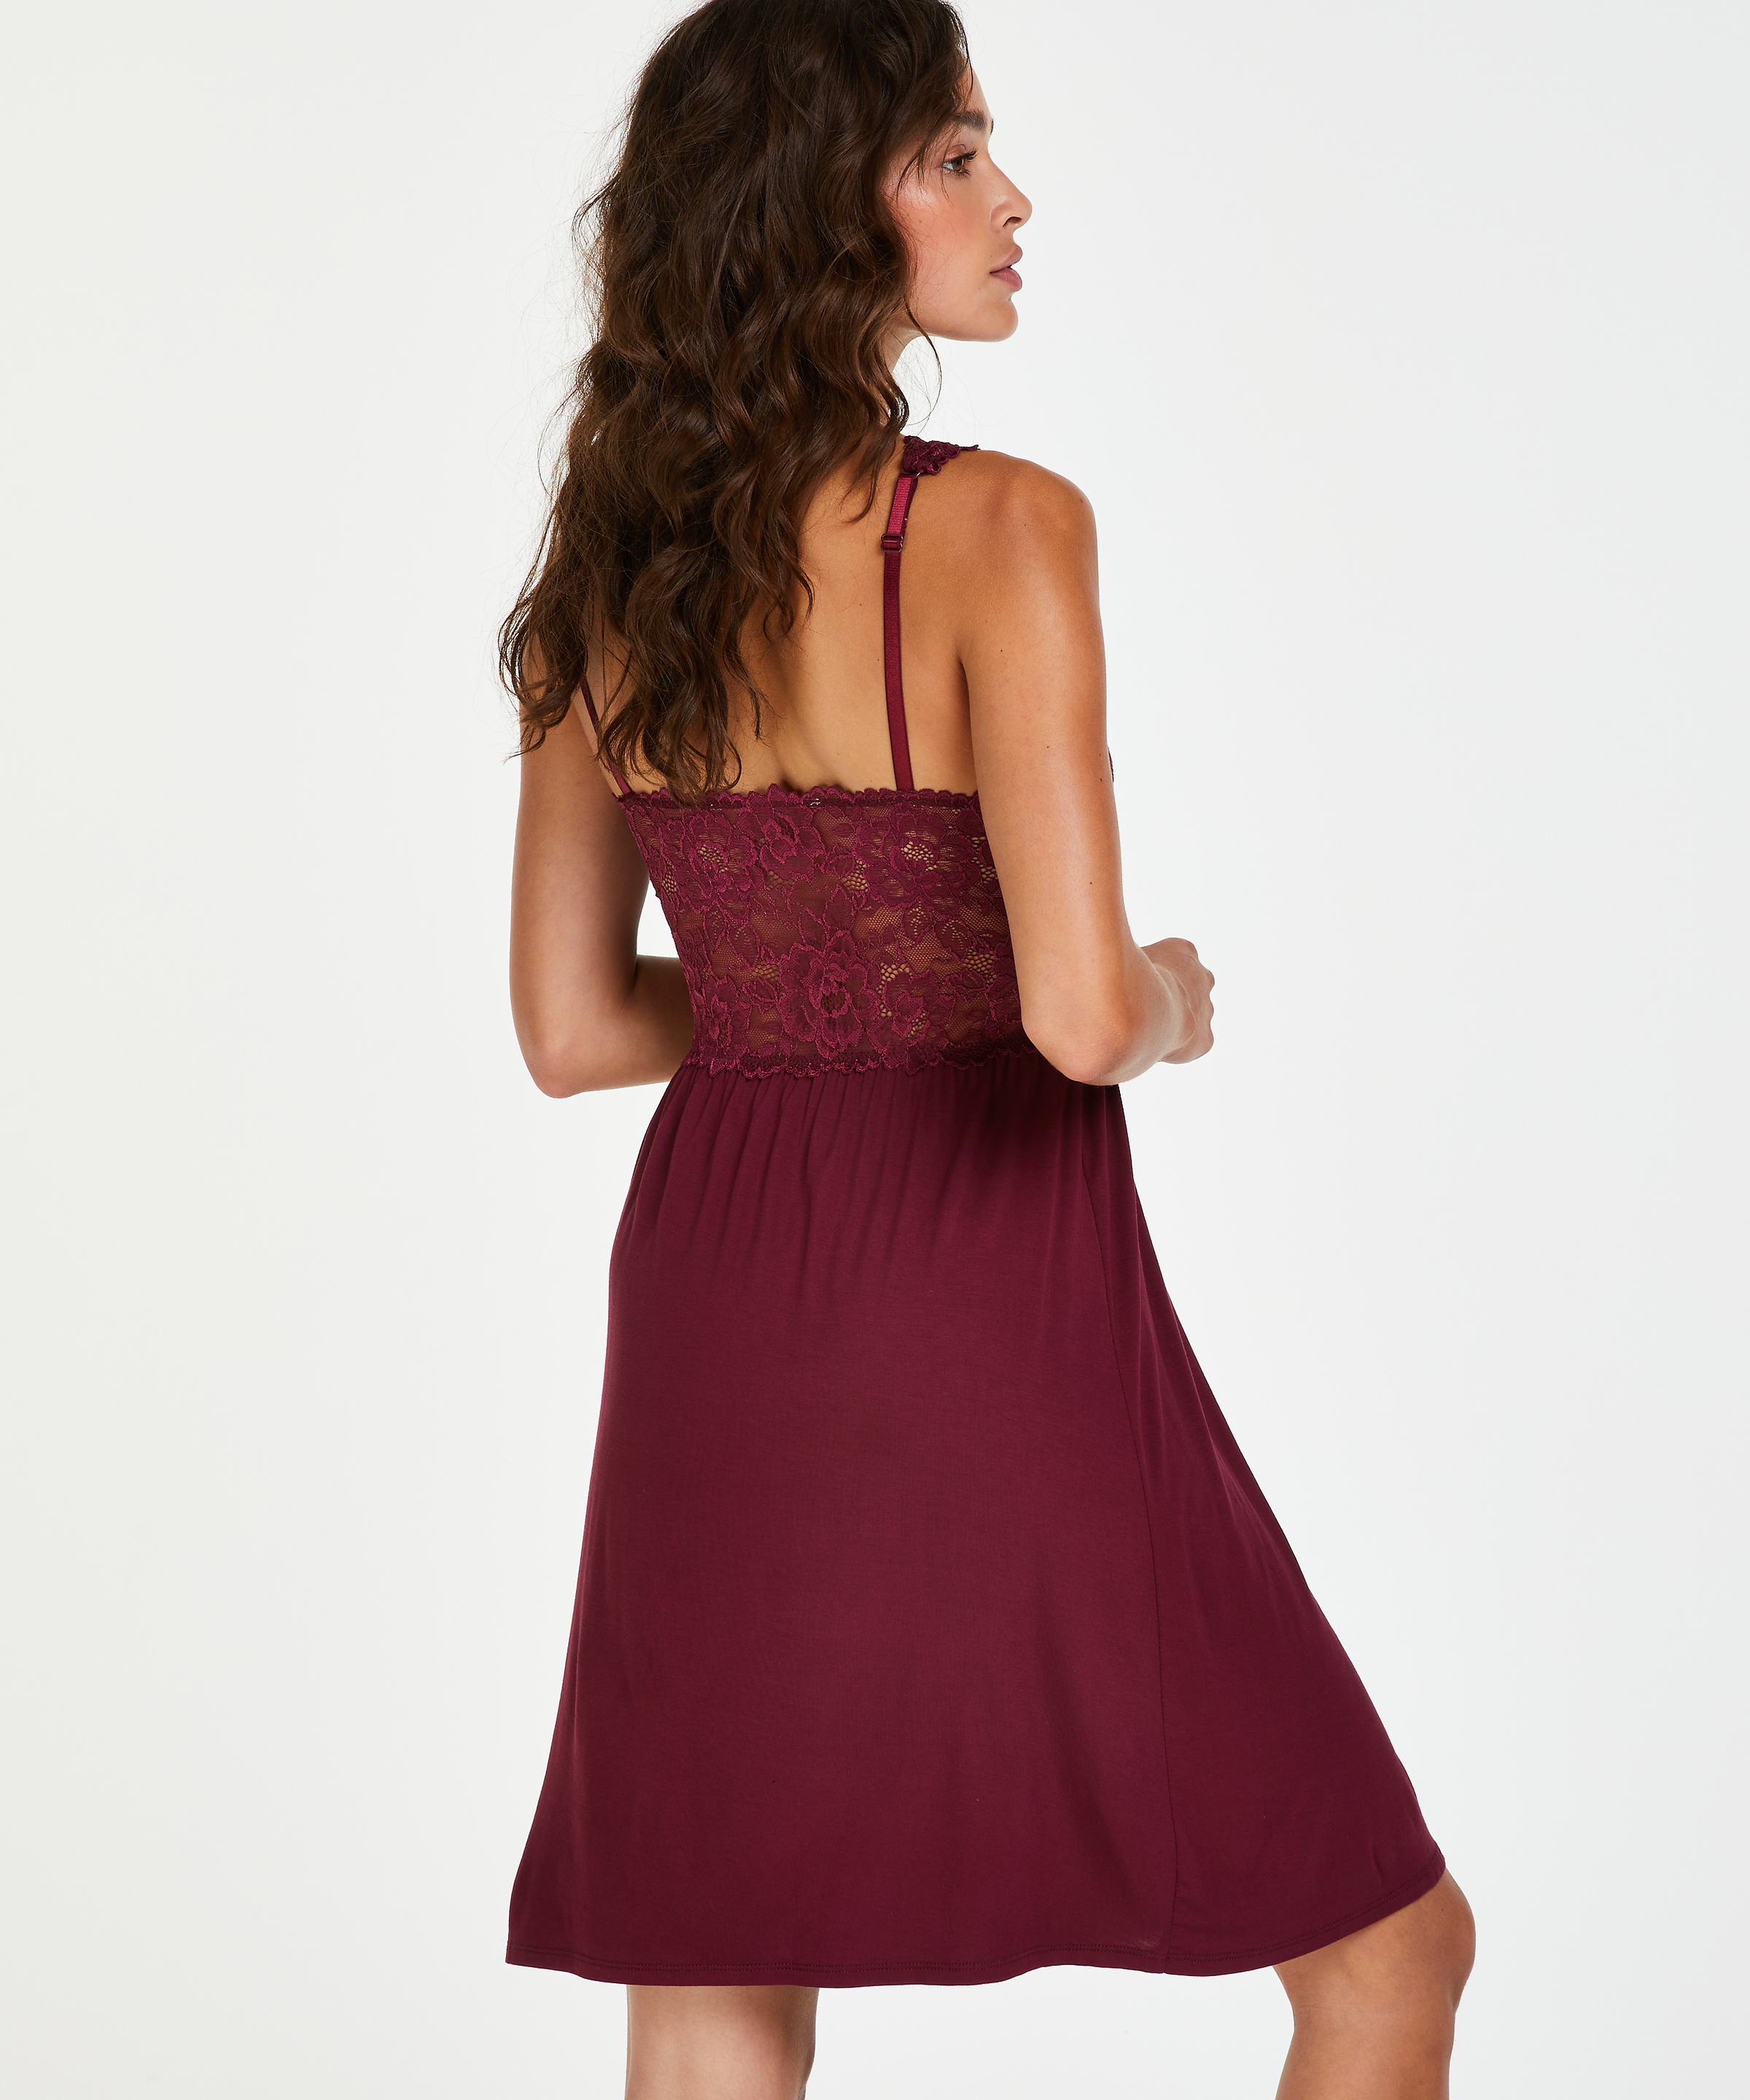 Nora Lace Slip Dress, Red, main